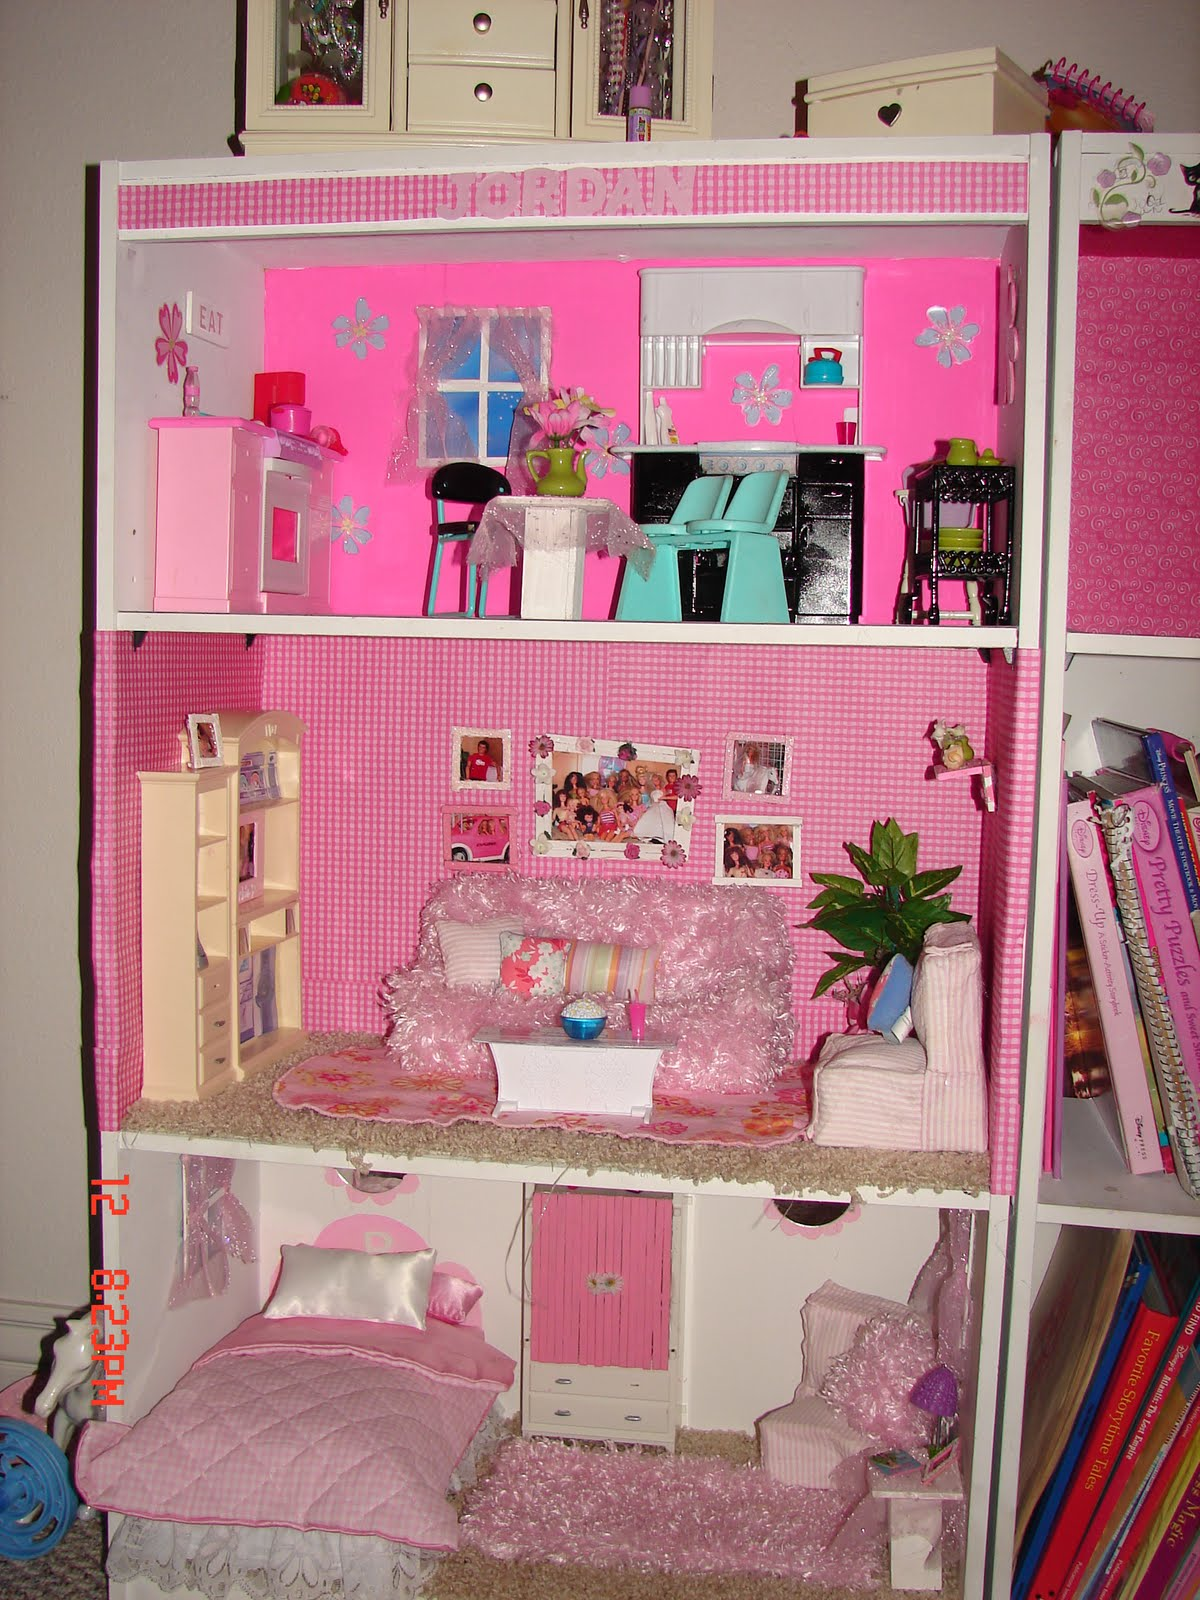 Make Your Own Barbie Furniture Property Mesmerizing Diy Barbie House From A Shelf  A Girl And A Glue Gun Review